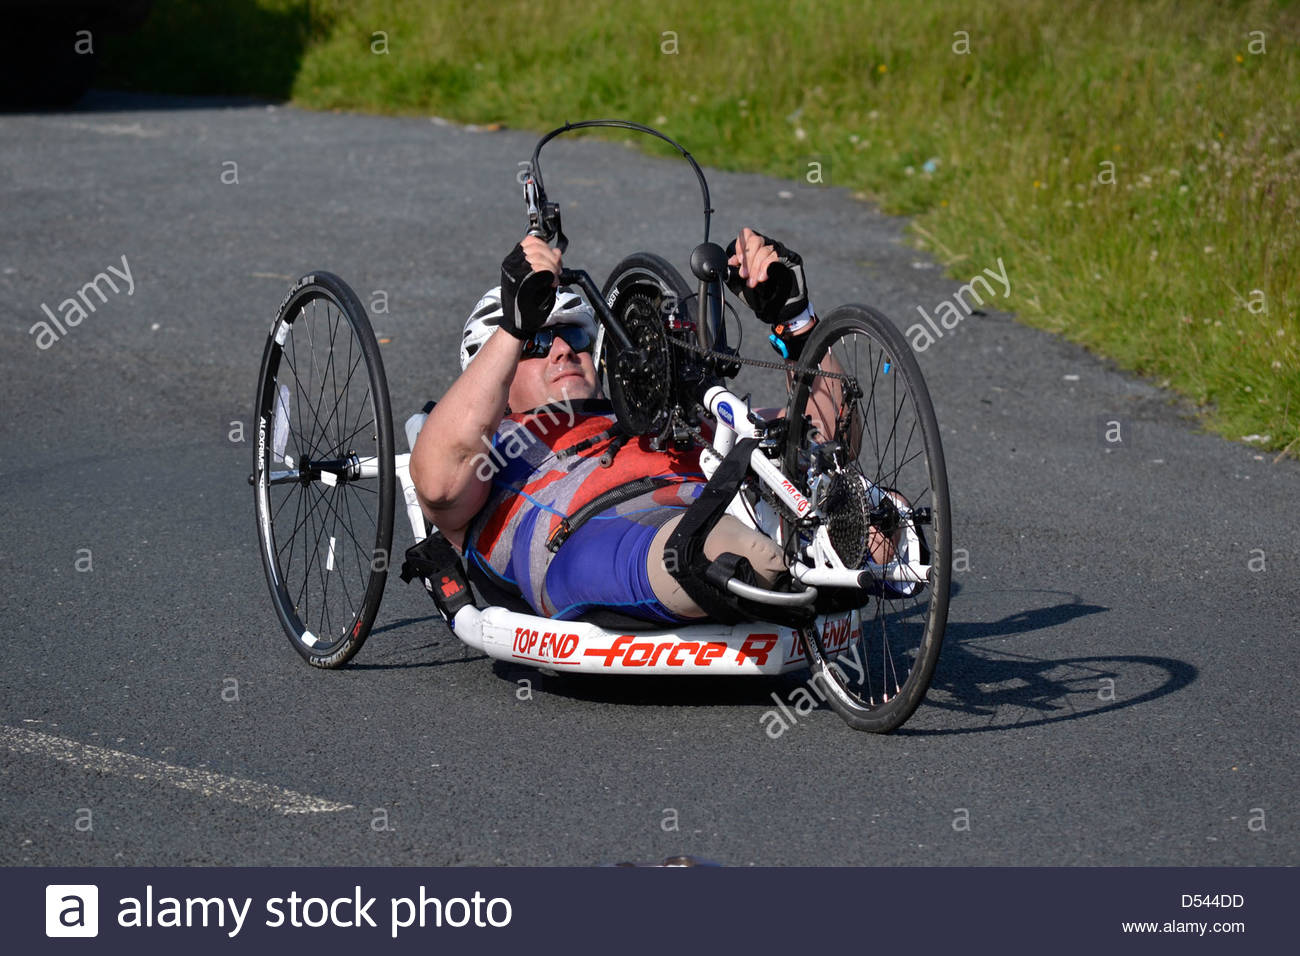 Team True Spirit competitor taking part in the Bolton Ironman, July 2012 - Stock Image